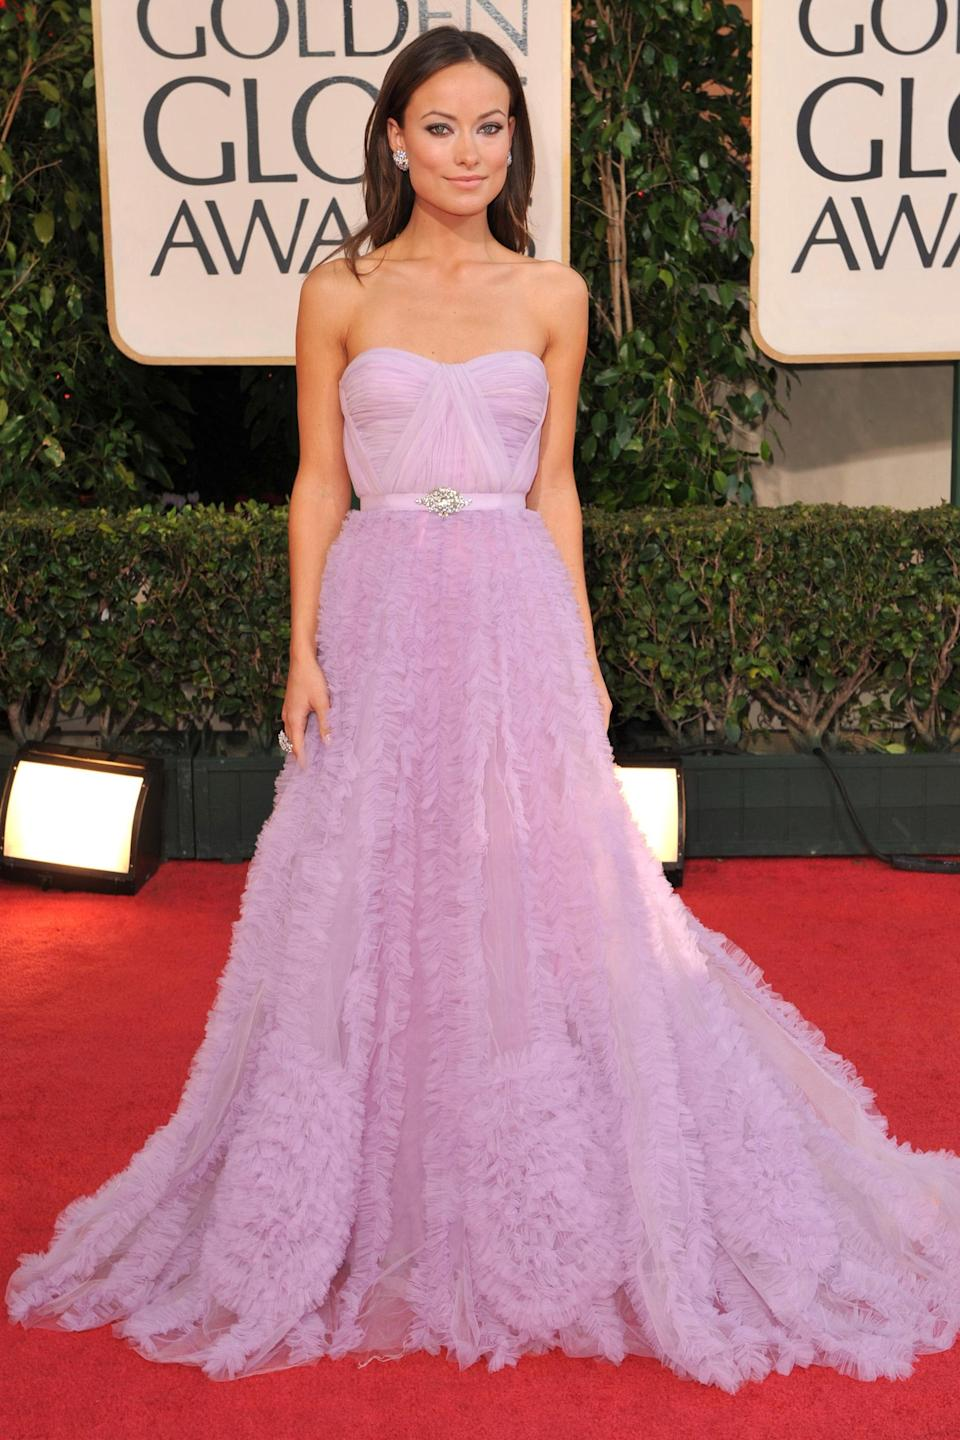 """<strong><h2>2009</h2></strong><br>Admittedly, lavender in January seems more 2018 than 2009, but when it's Olivia Wilde underneath this Reem Acra gown, all bets are off.<br><br><em>Olivia Wilde in Reem Acra.</em><span class=""""copyright"""">Photo: Steve Granitz/WireImage.</span>"""